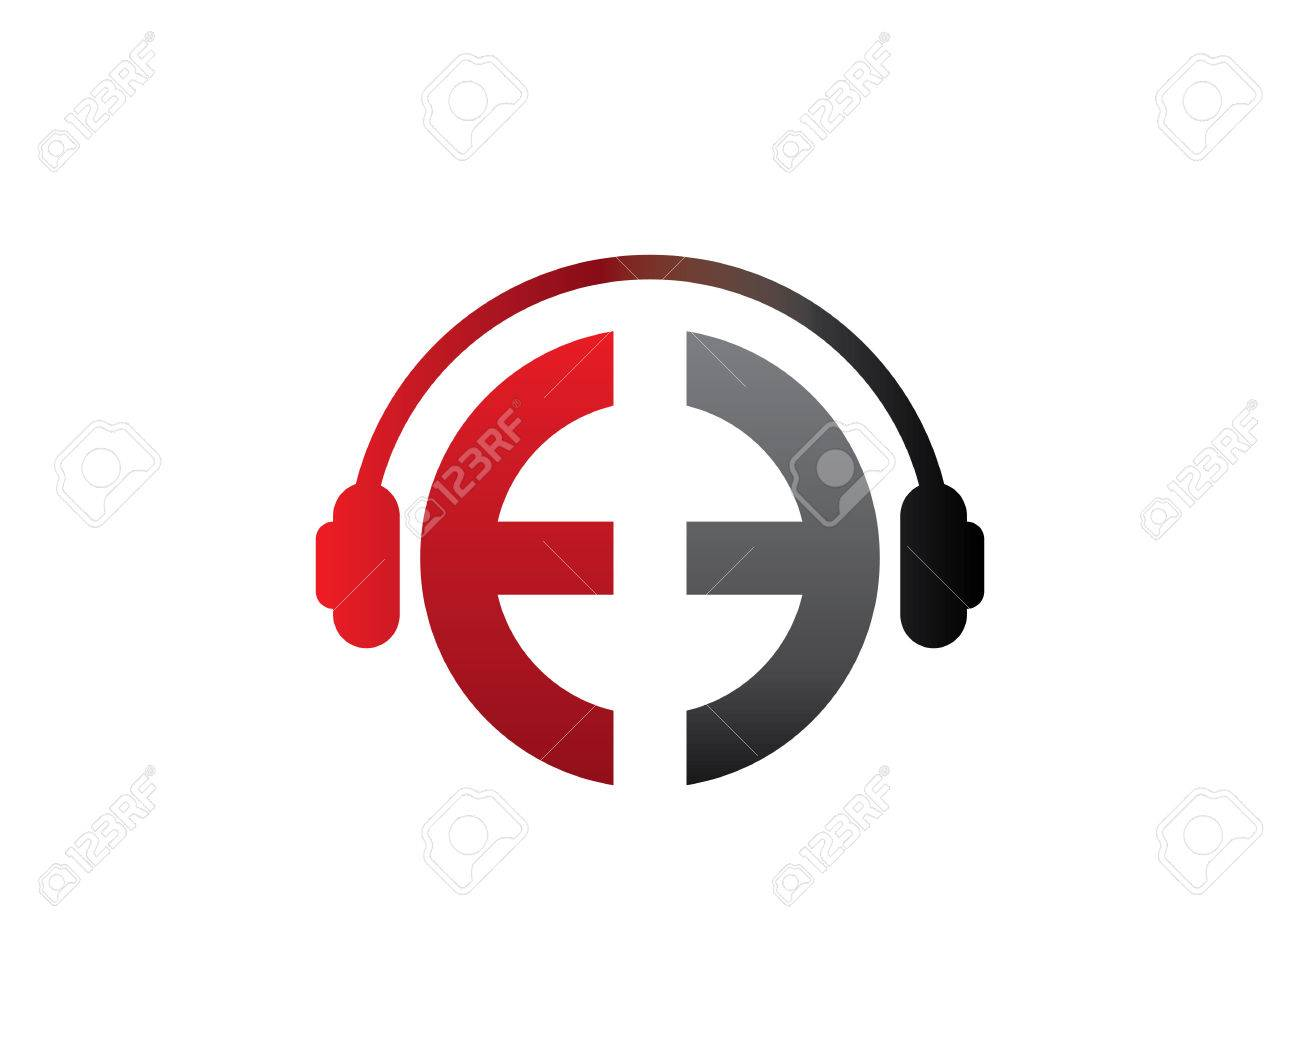 E Letter Dj In Headphone Logo Template Royalty Free Cliparts ...